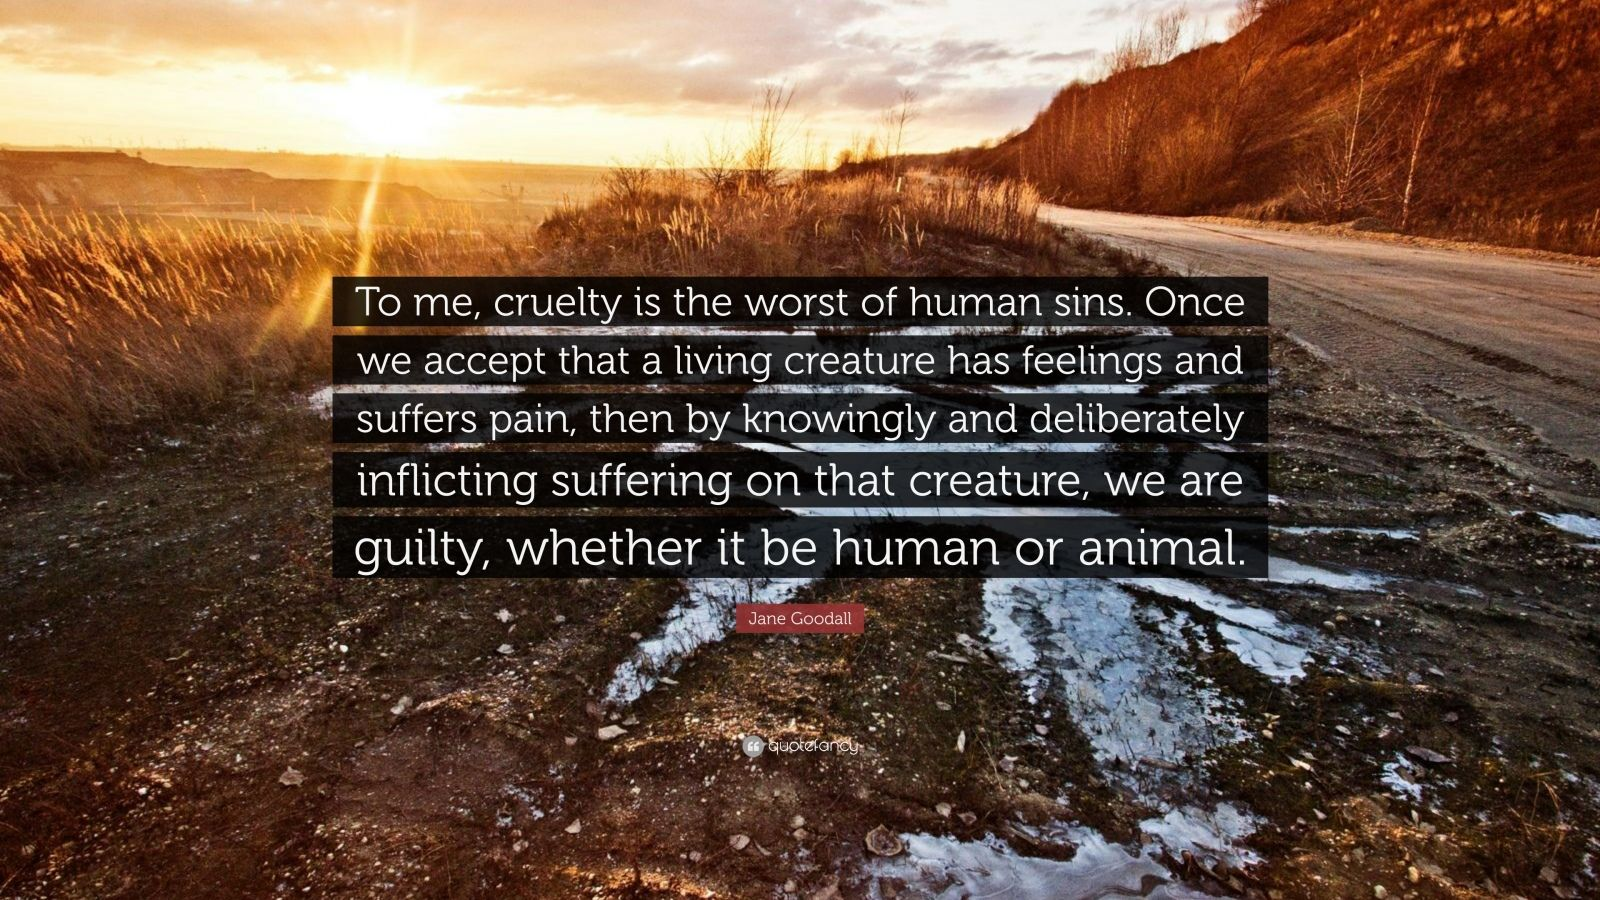 "Jane Goodall Quote: ""To me, cruelty is the worst of human sins. Once we accept that a living creature has feelings and suffers pain, then by knowingly and deliberately inflicting suffering on that creature, we are guilty, whether it be human or animal."""